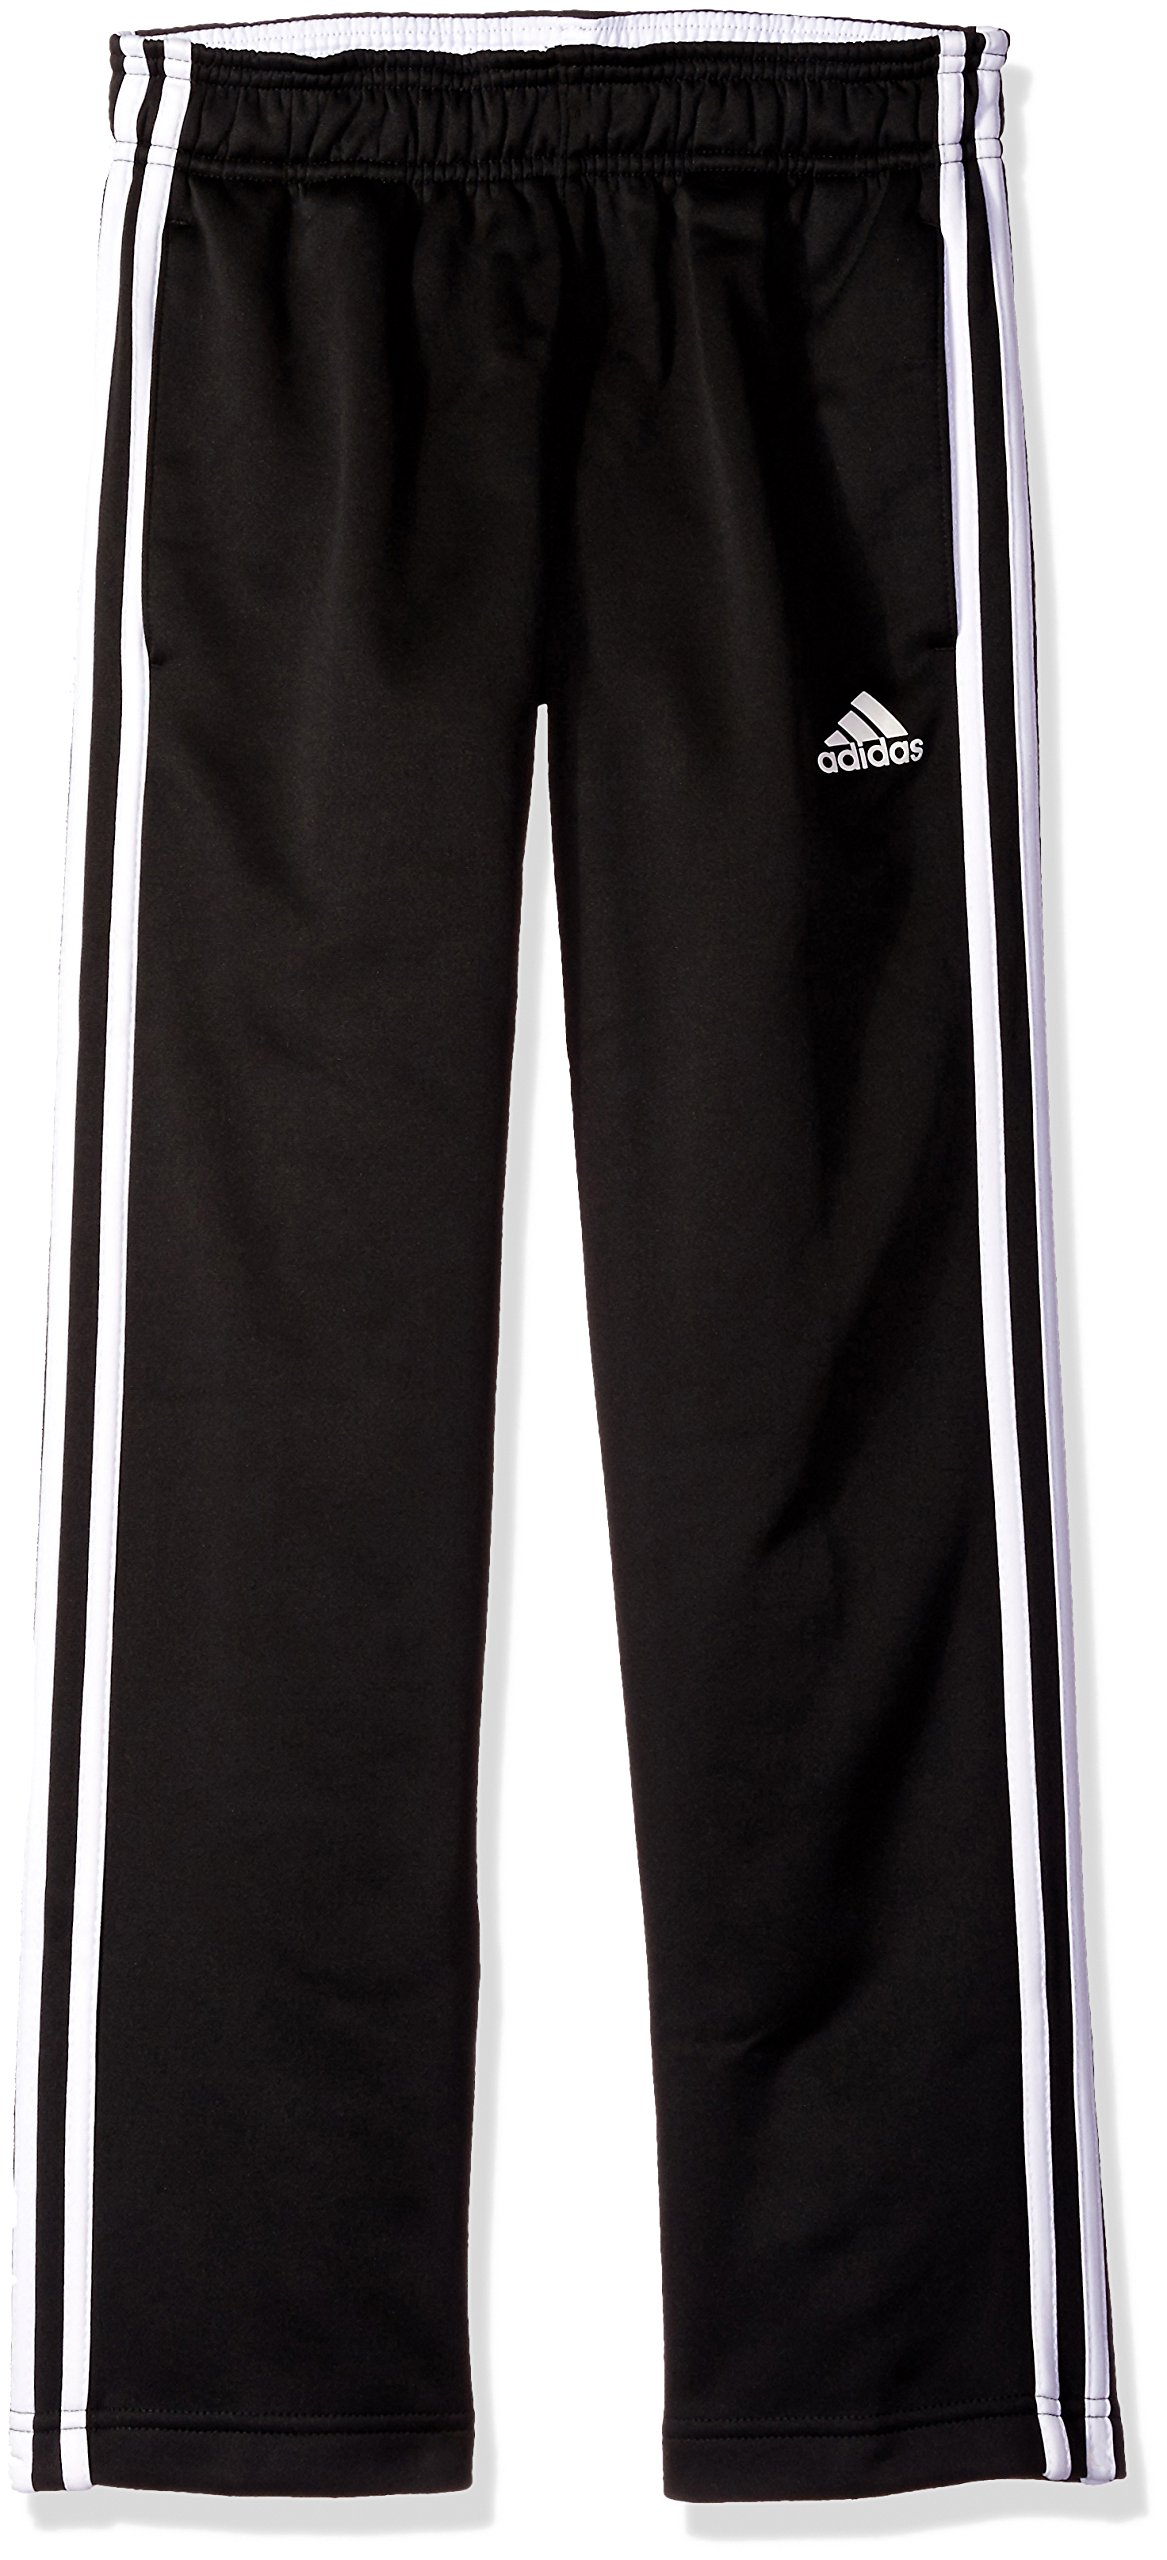 adidas Big Boys' Tech Fleece Pant, Black/White, Medium/10-12